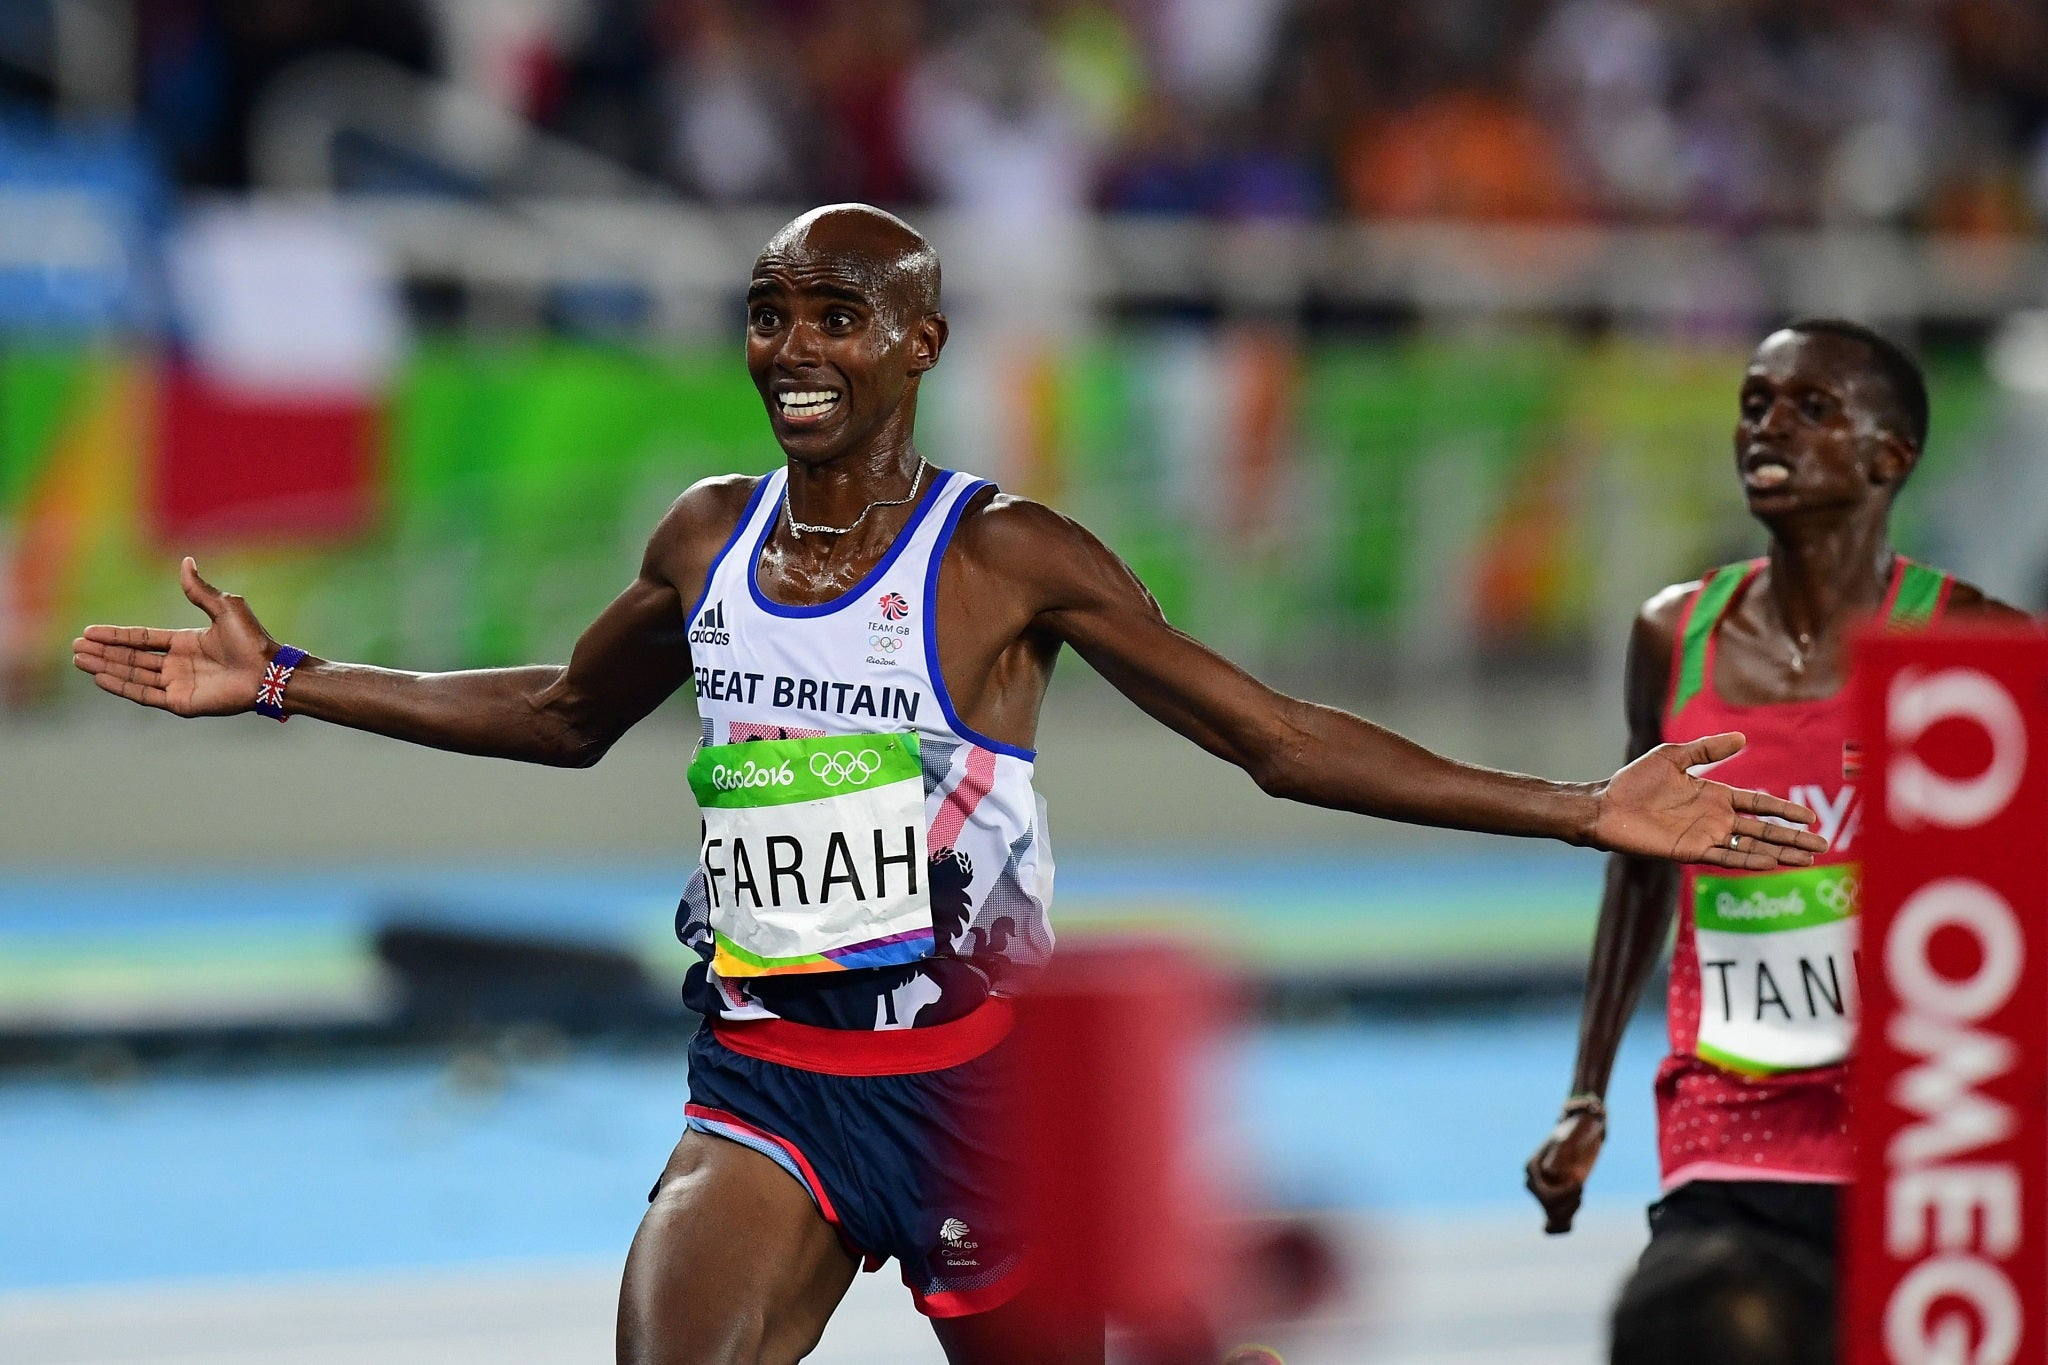 Rio 2016 live: Mo Farah wins 10,000m gold, Jess Ennis-Hill battles to silver and Greg Rutherford takes bronze